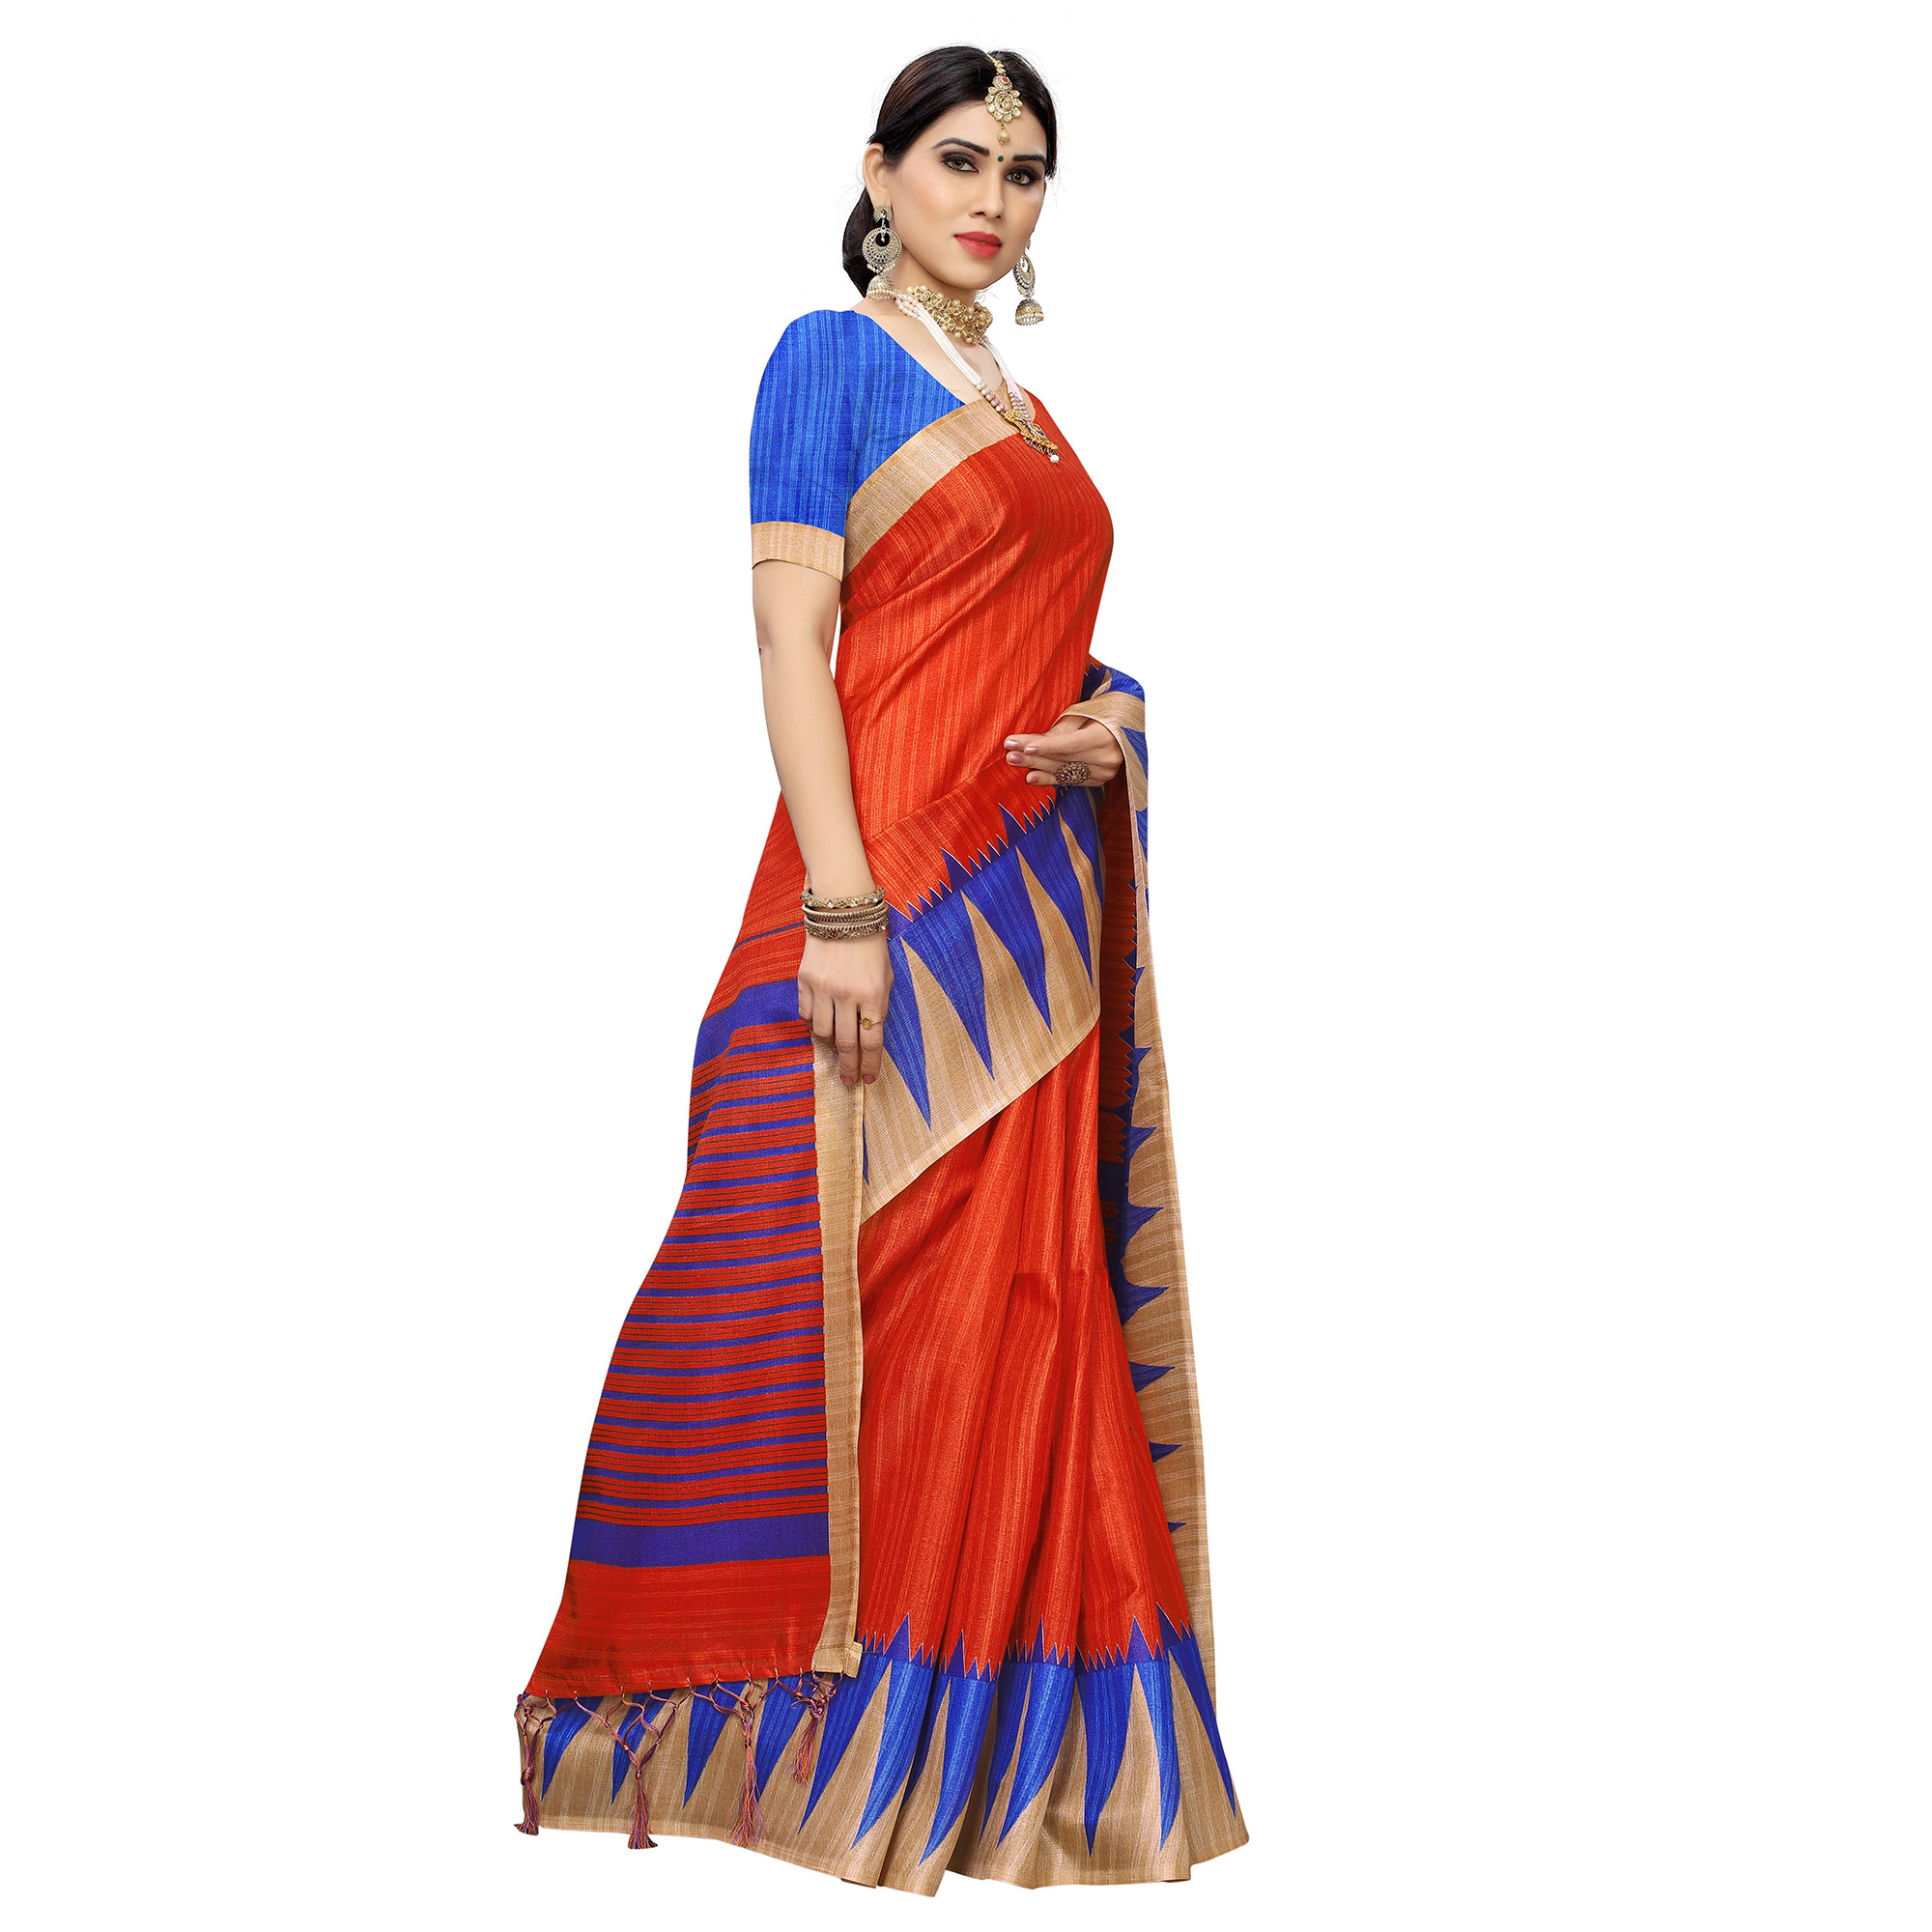 Delightful Orange Colored Casual Wear Printed Cotton Saree With Tassels